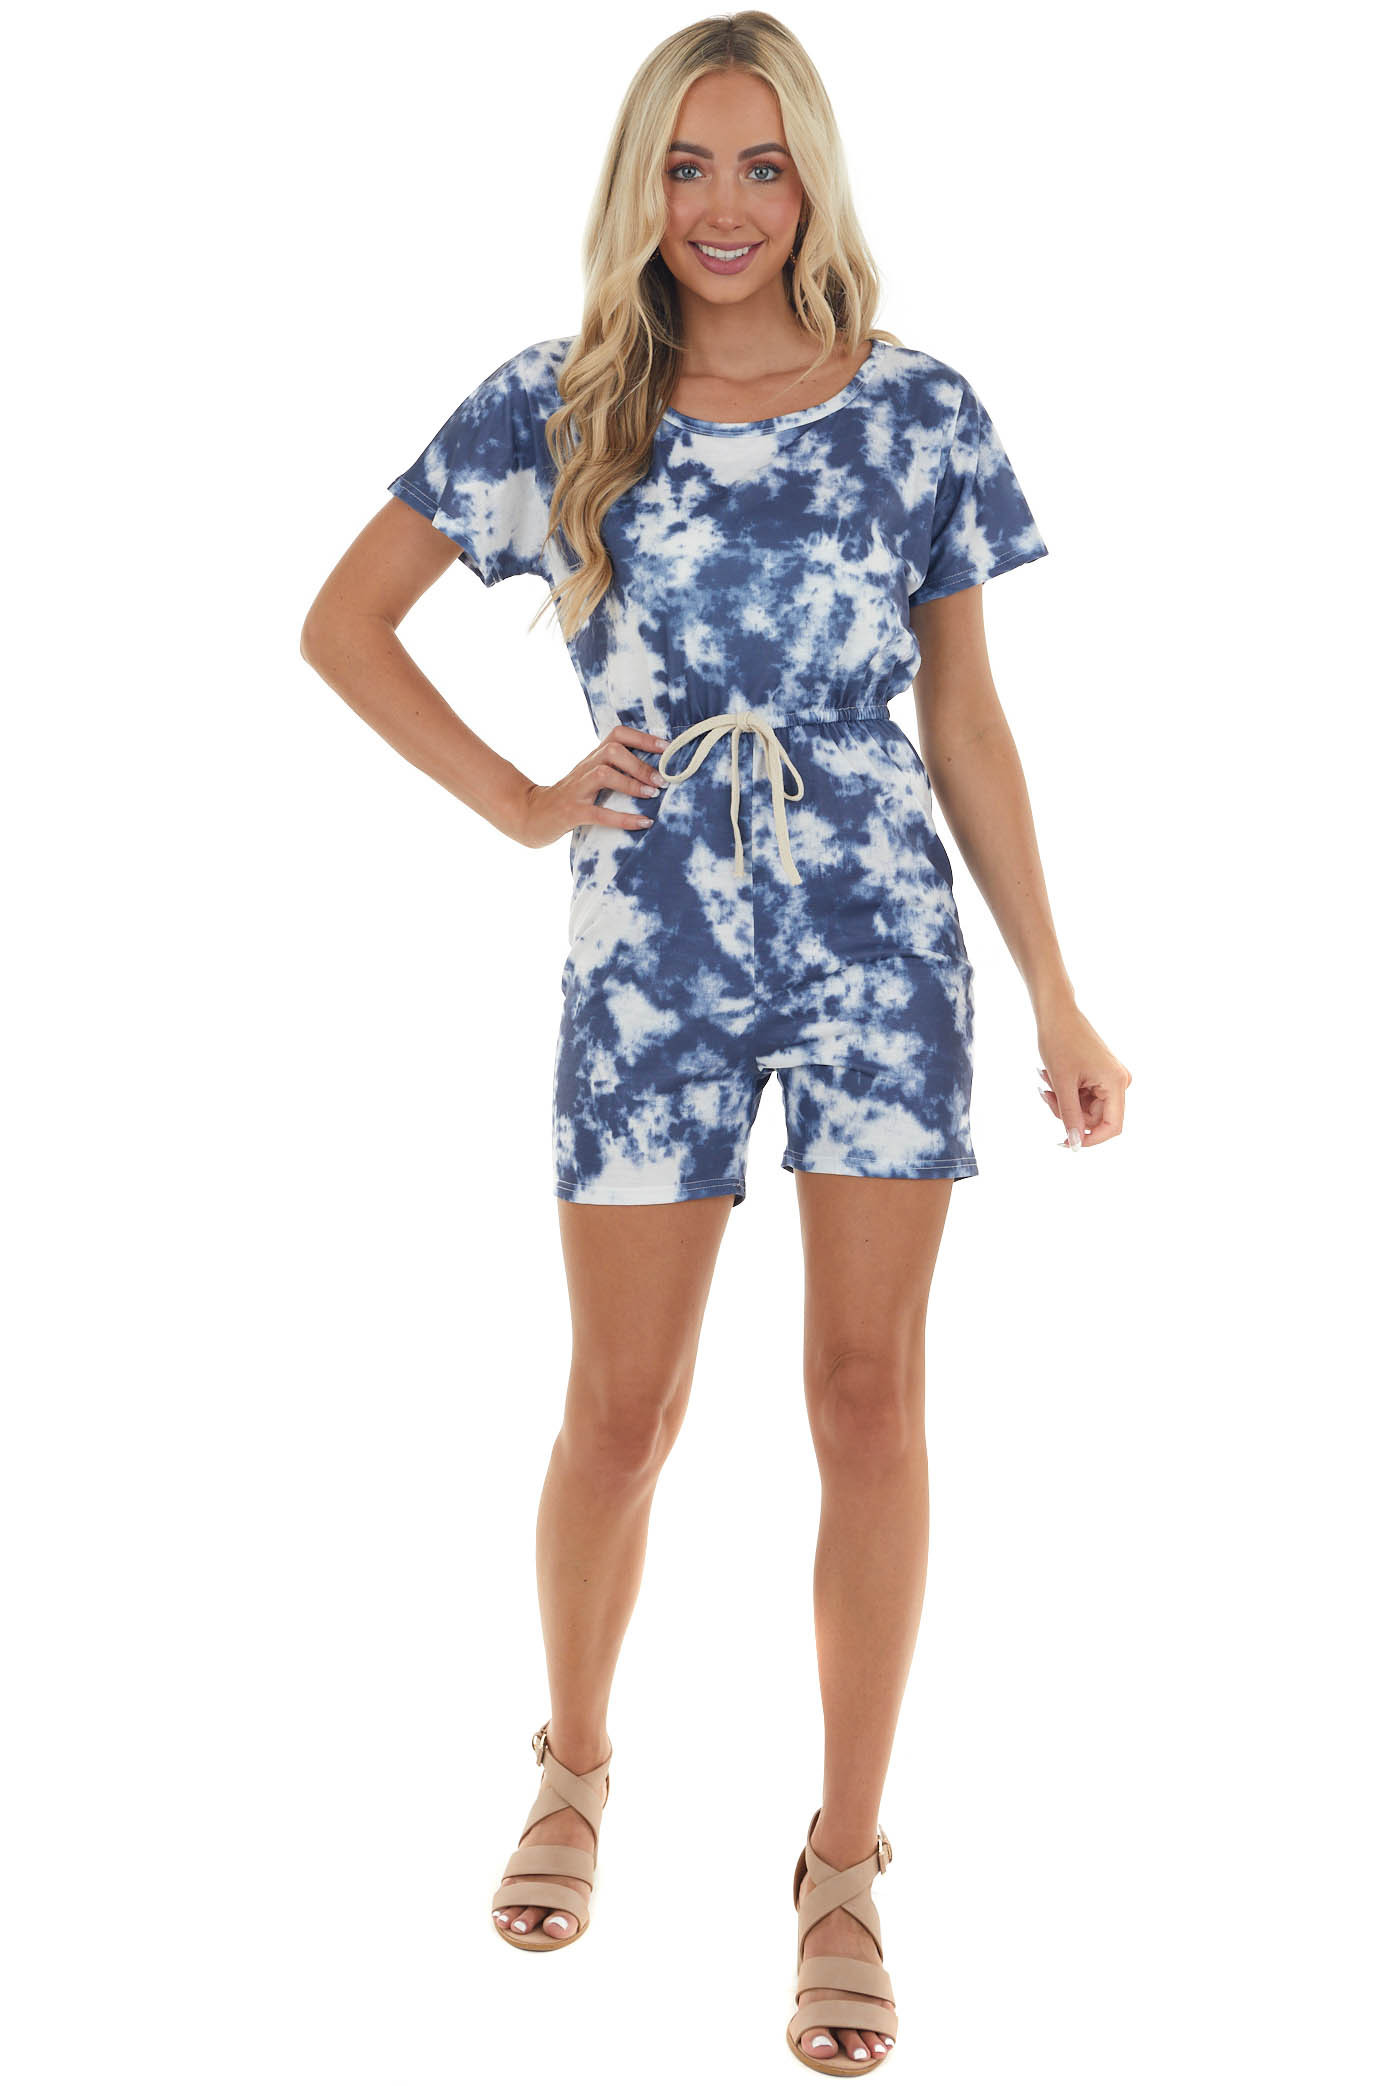 Stormy Blue Tie Dye Short Sleeve Knit Romper with Front Tie